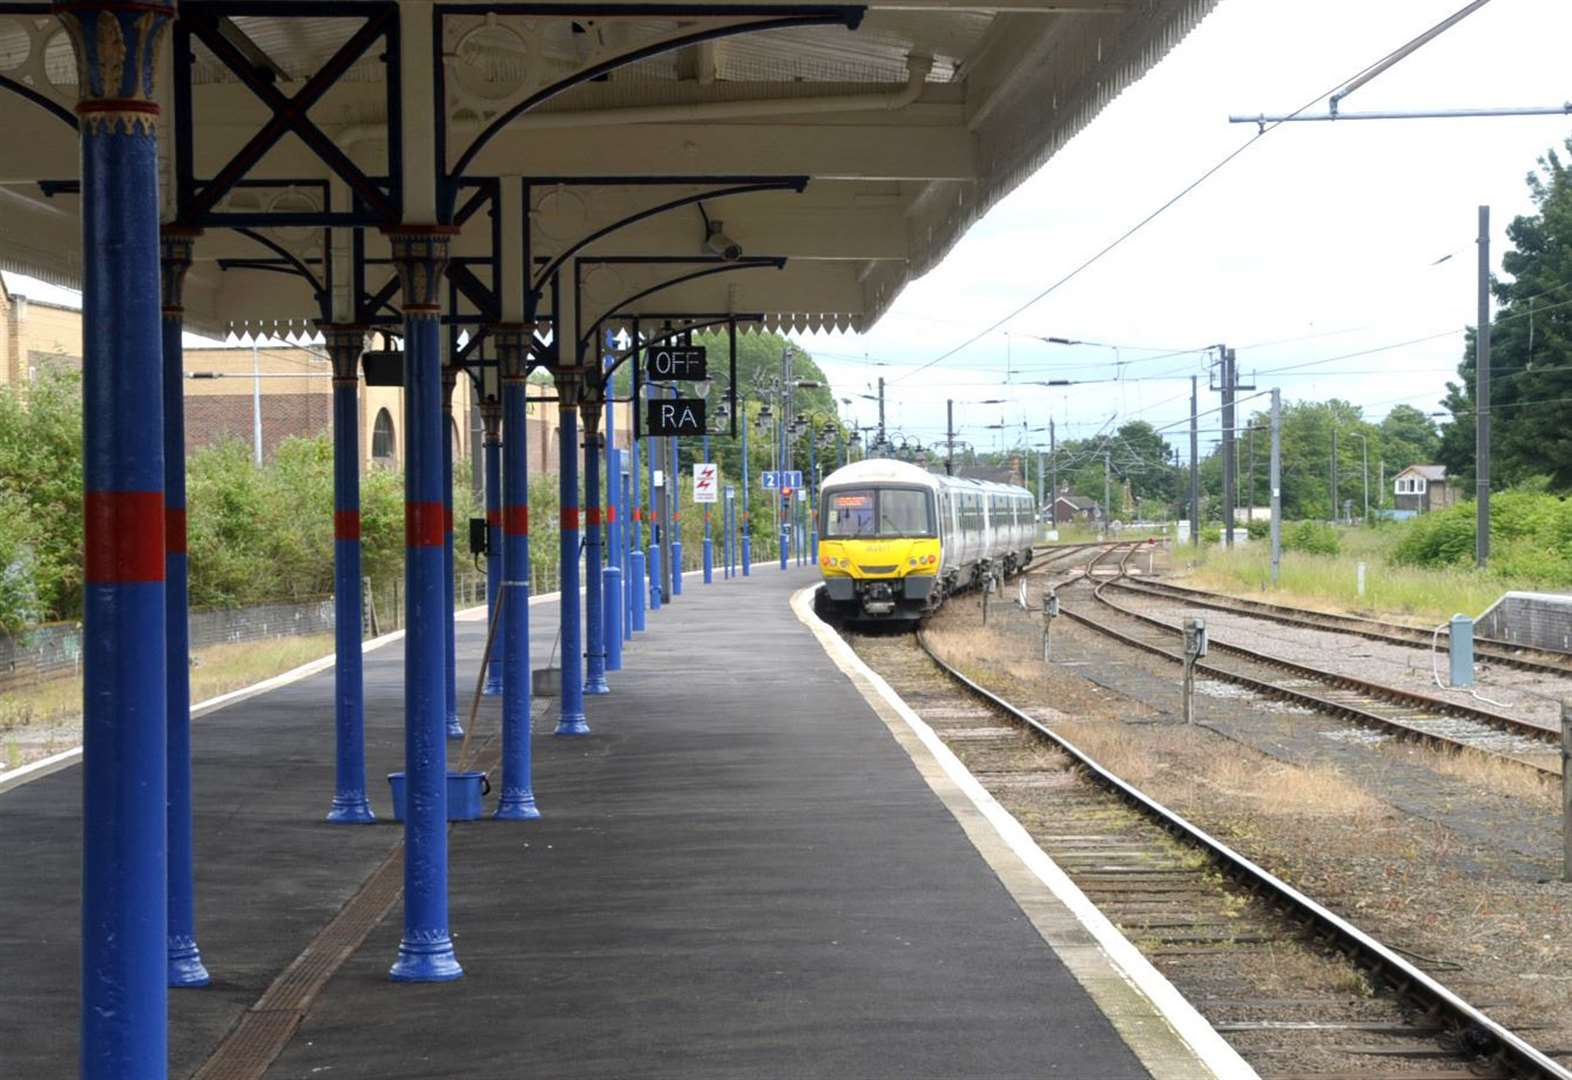 Reinstating railway link 'could save lives'